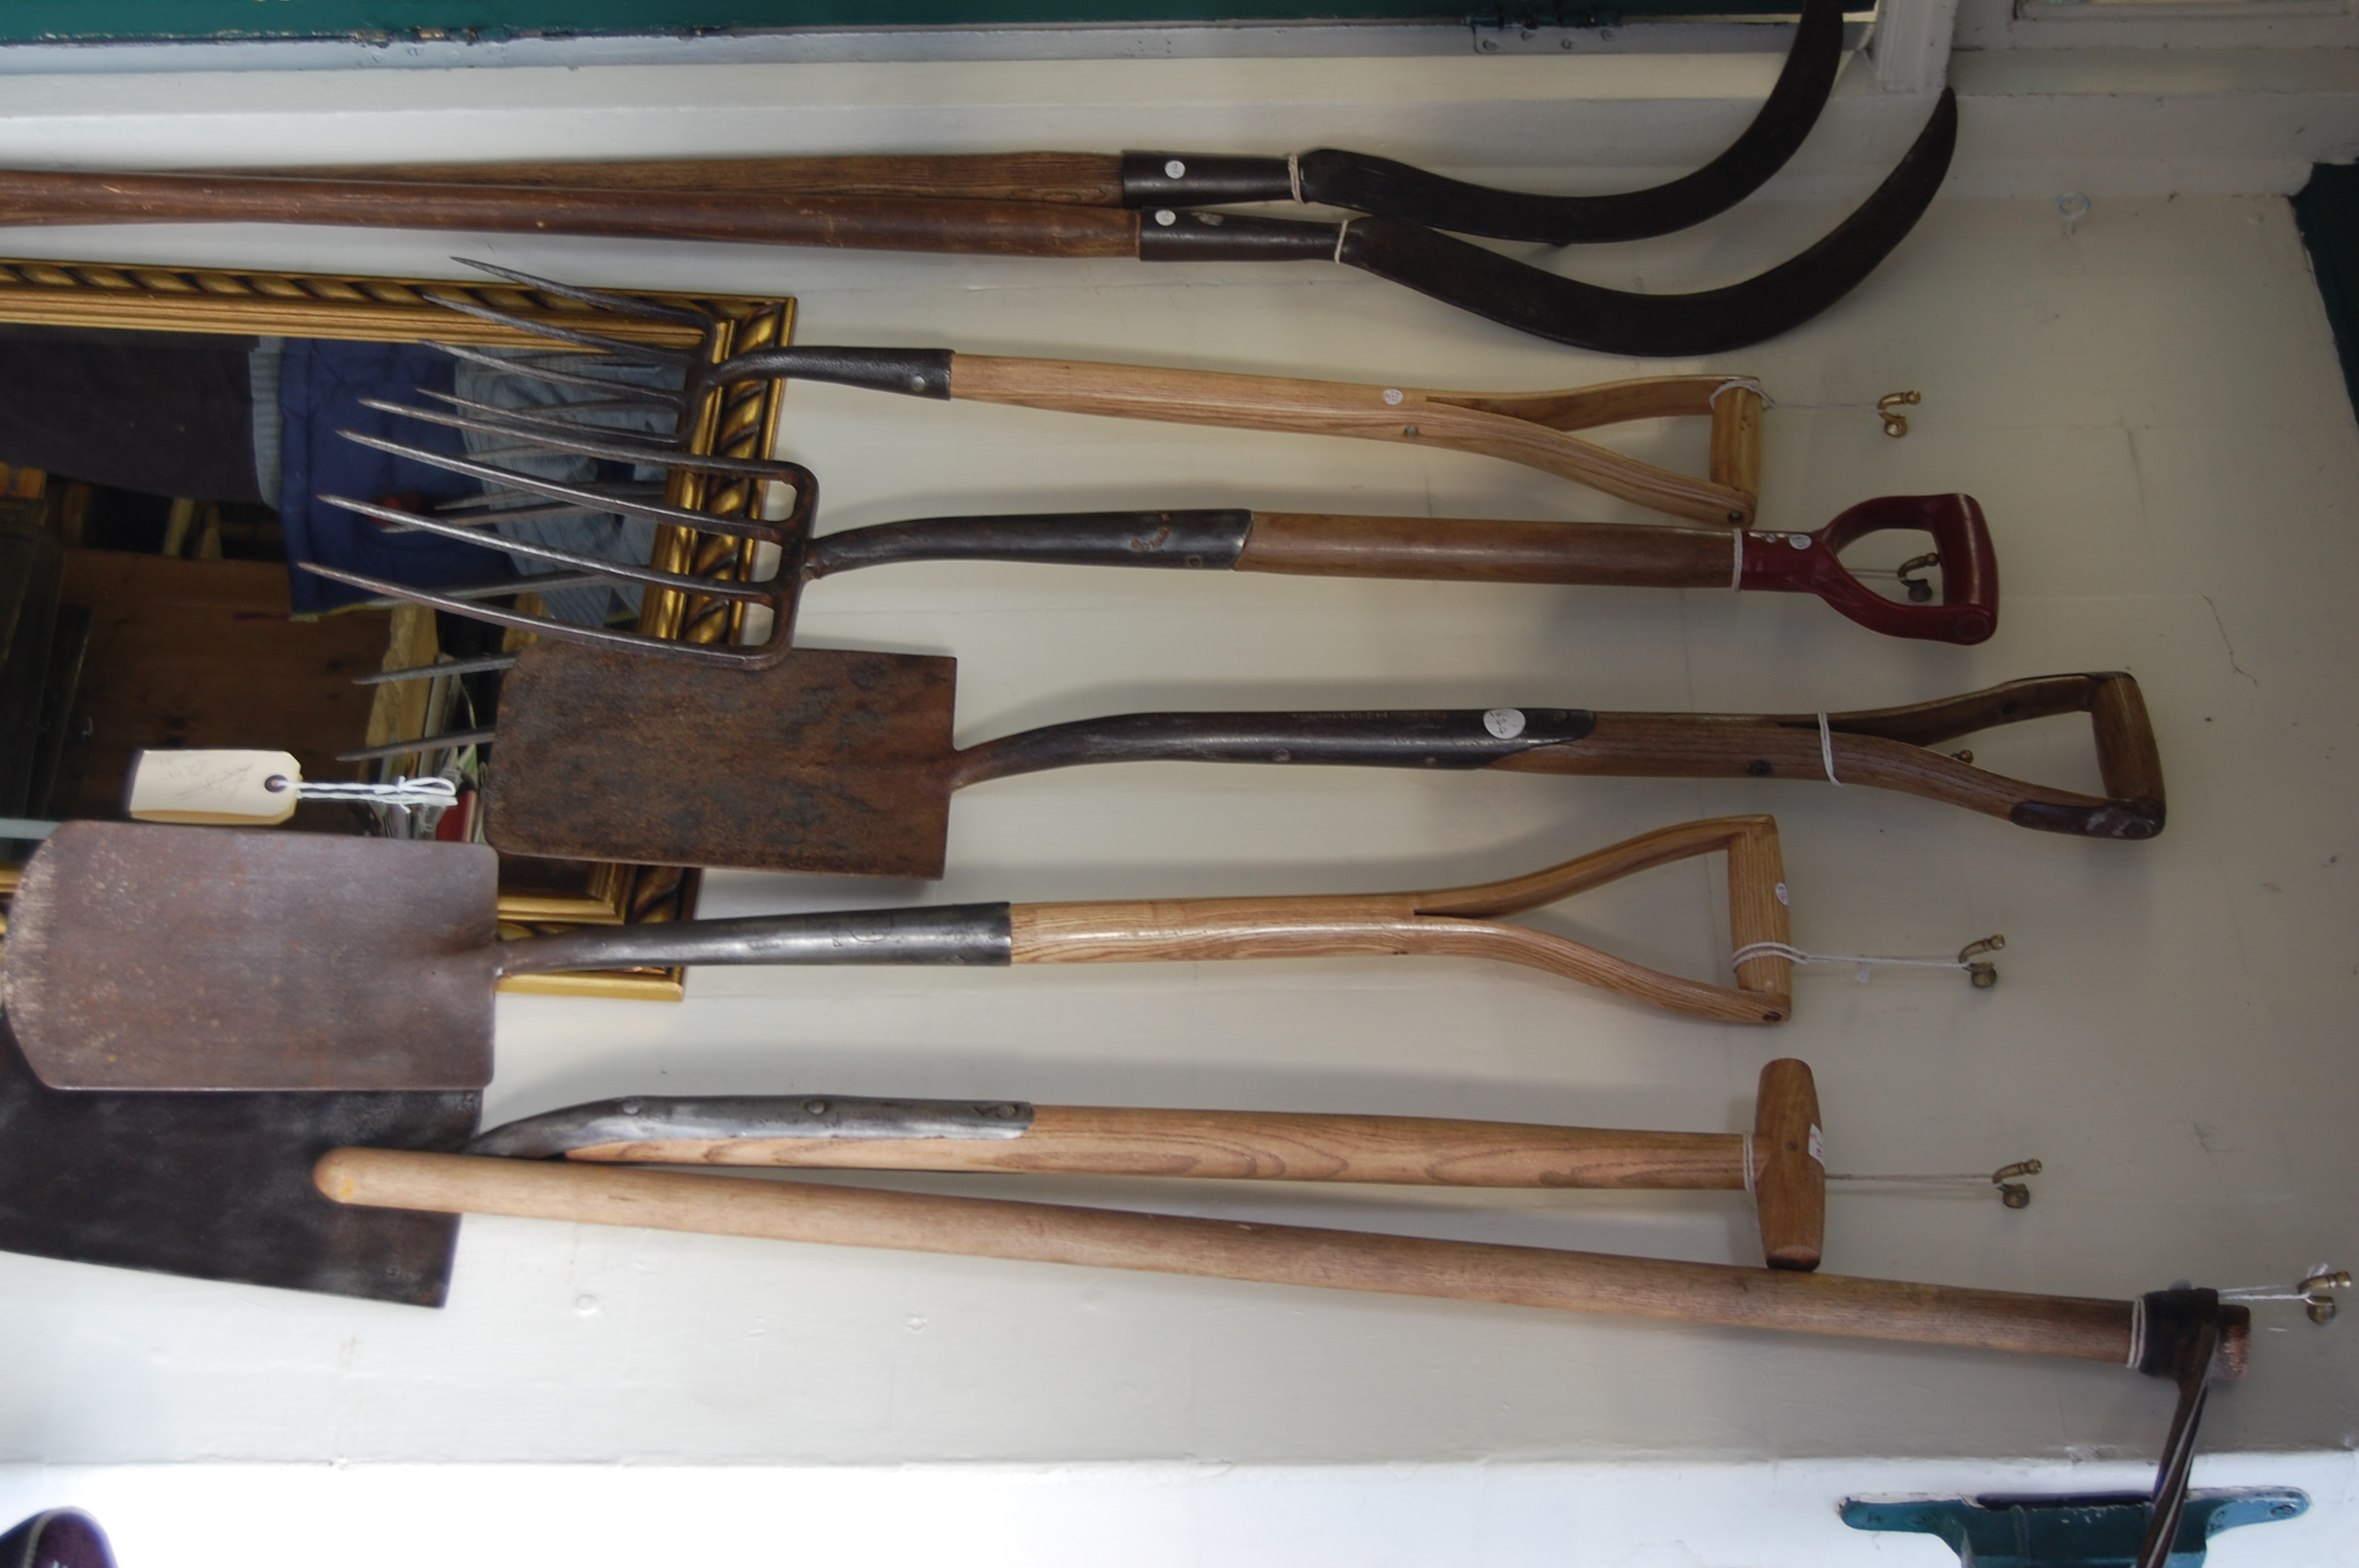 File:Kington 21   Antique Garden Tools.JPG